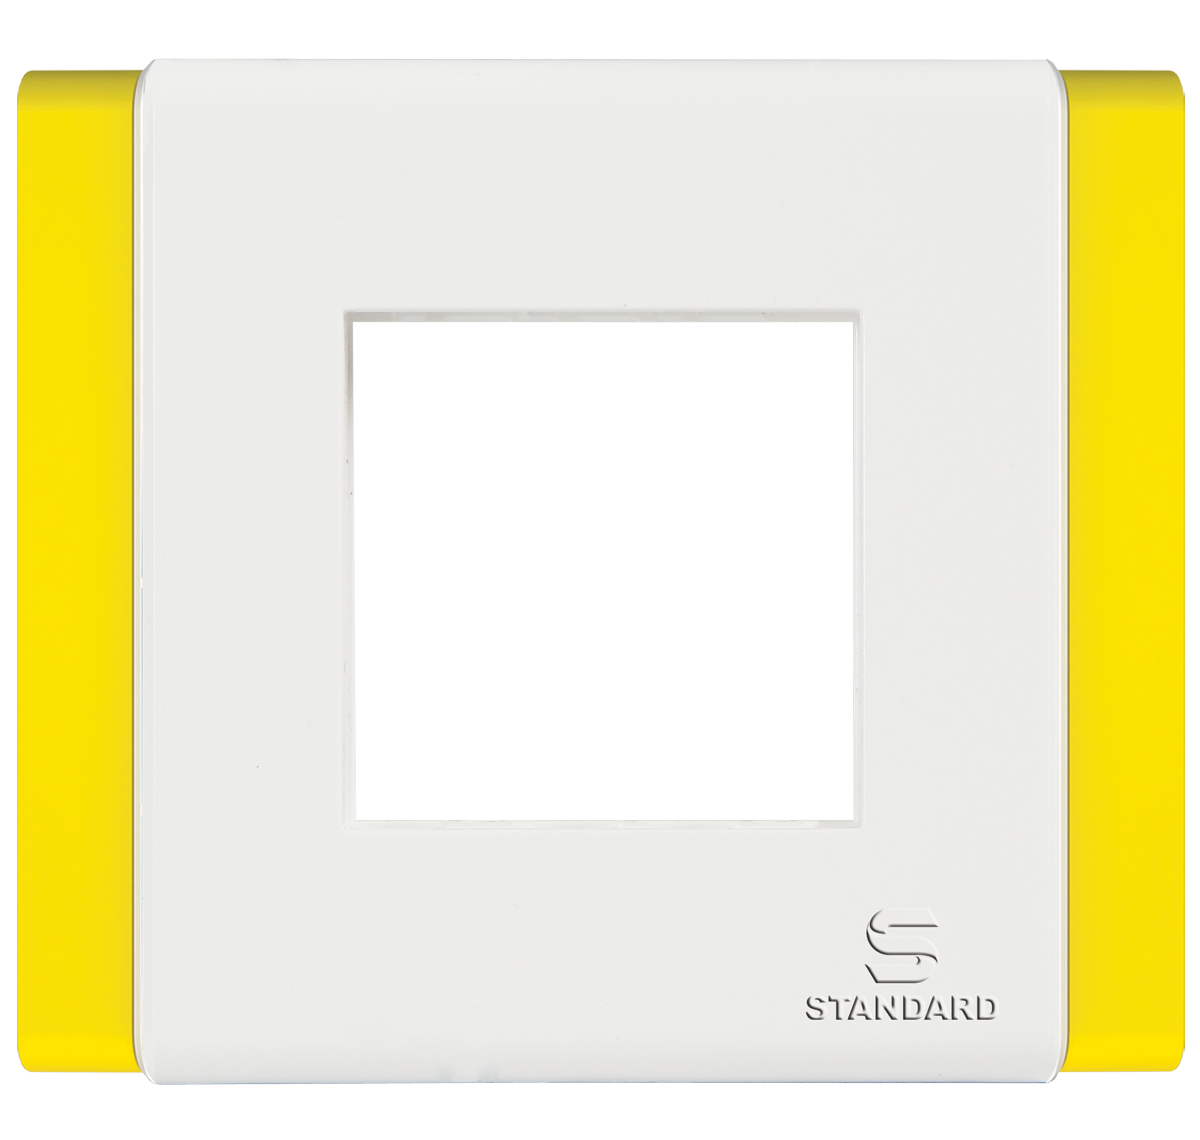 Standard - 2-m-lemon-yellow-cover-plate